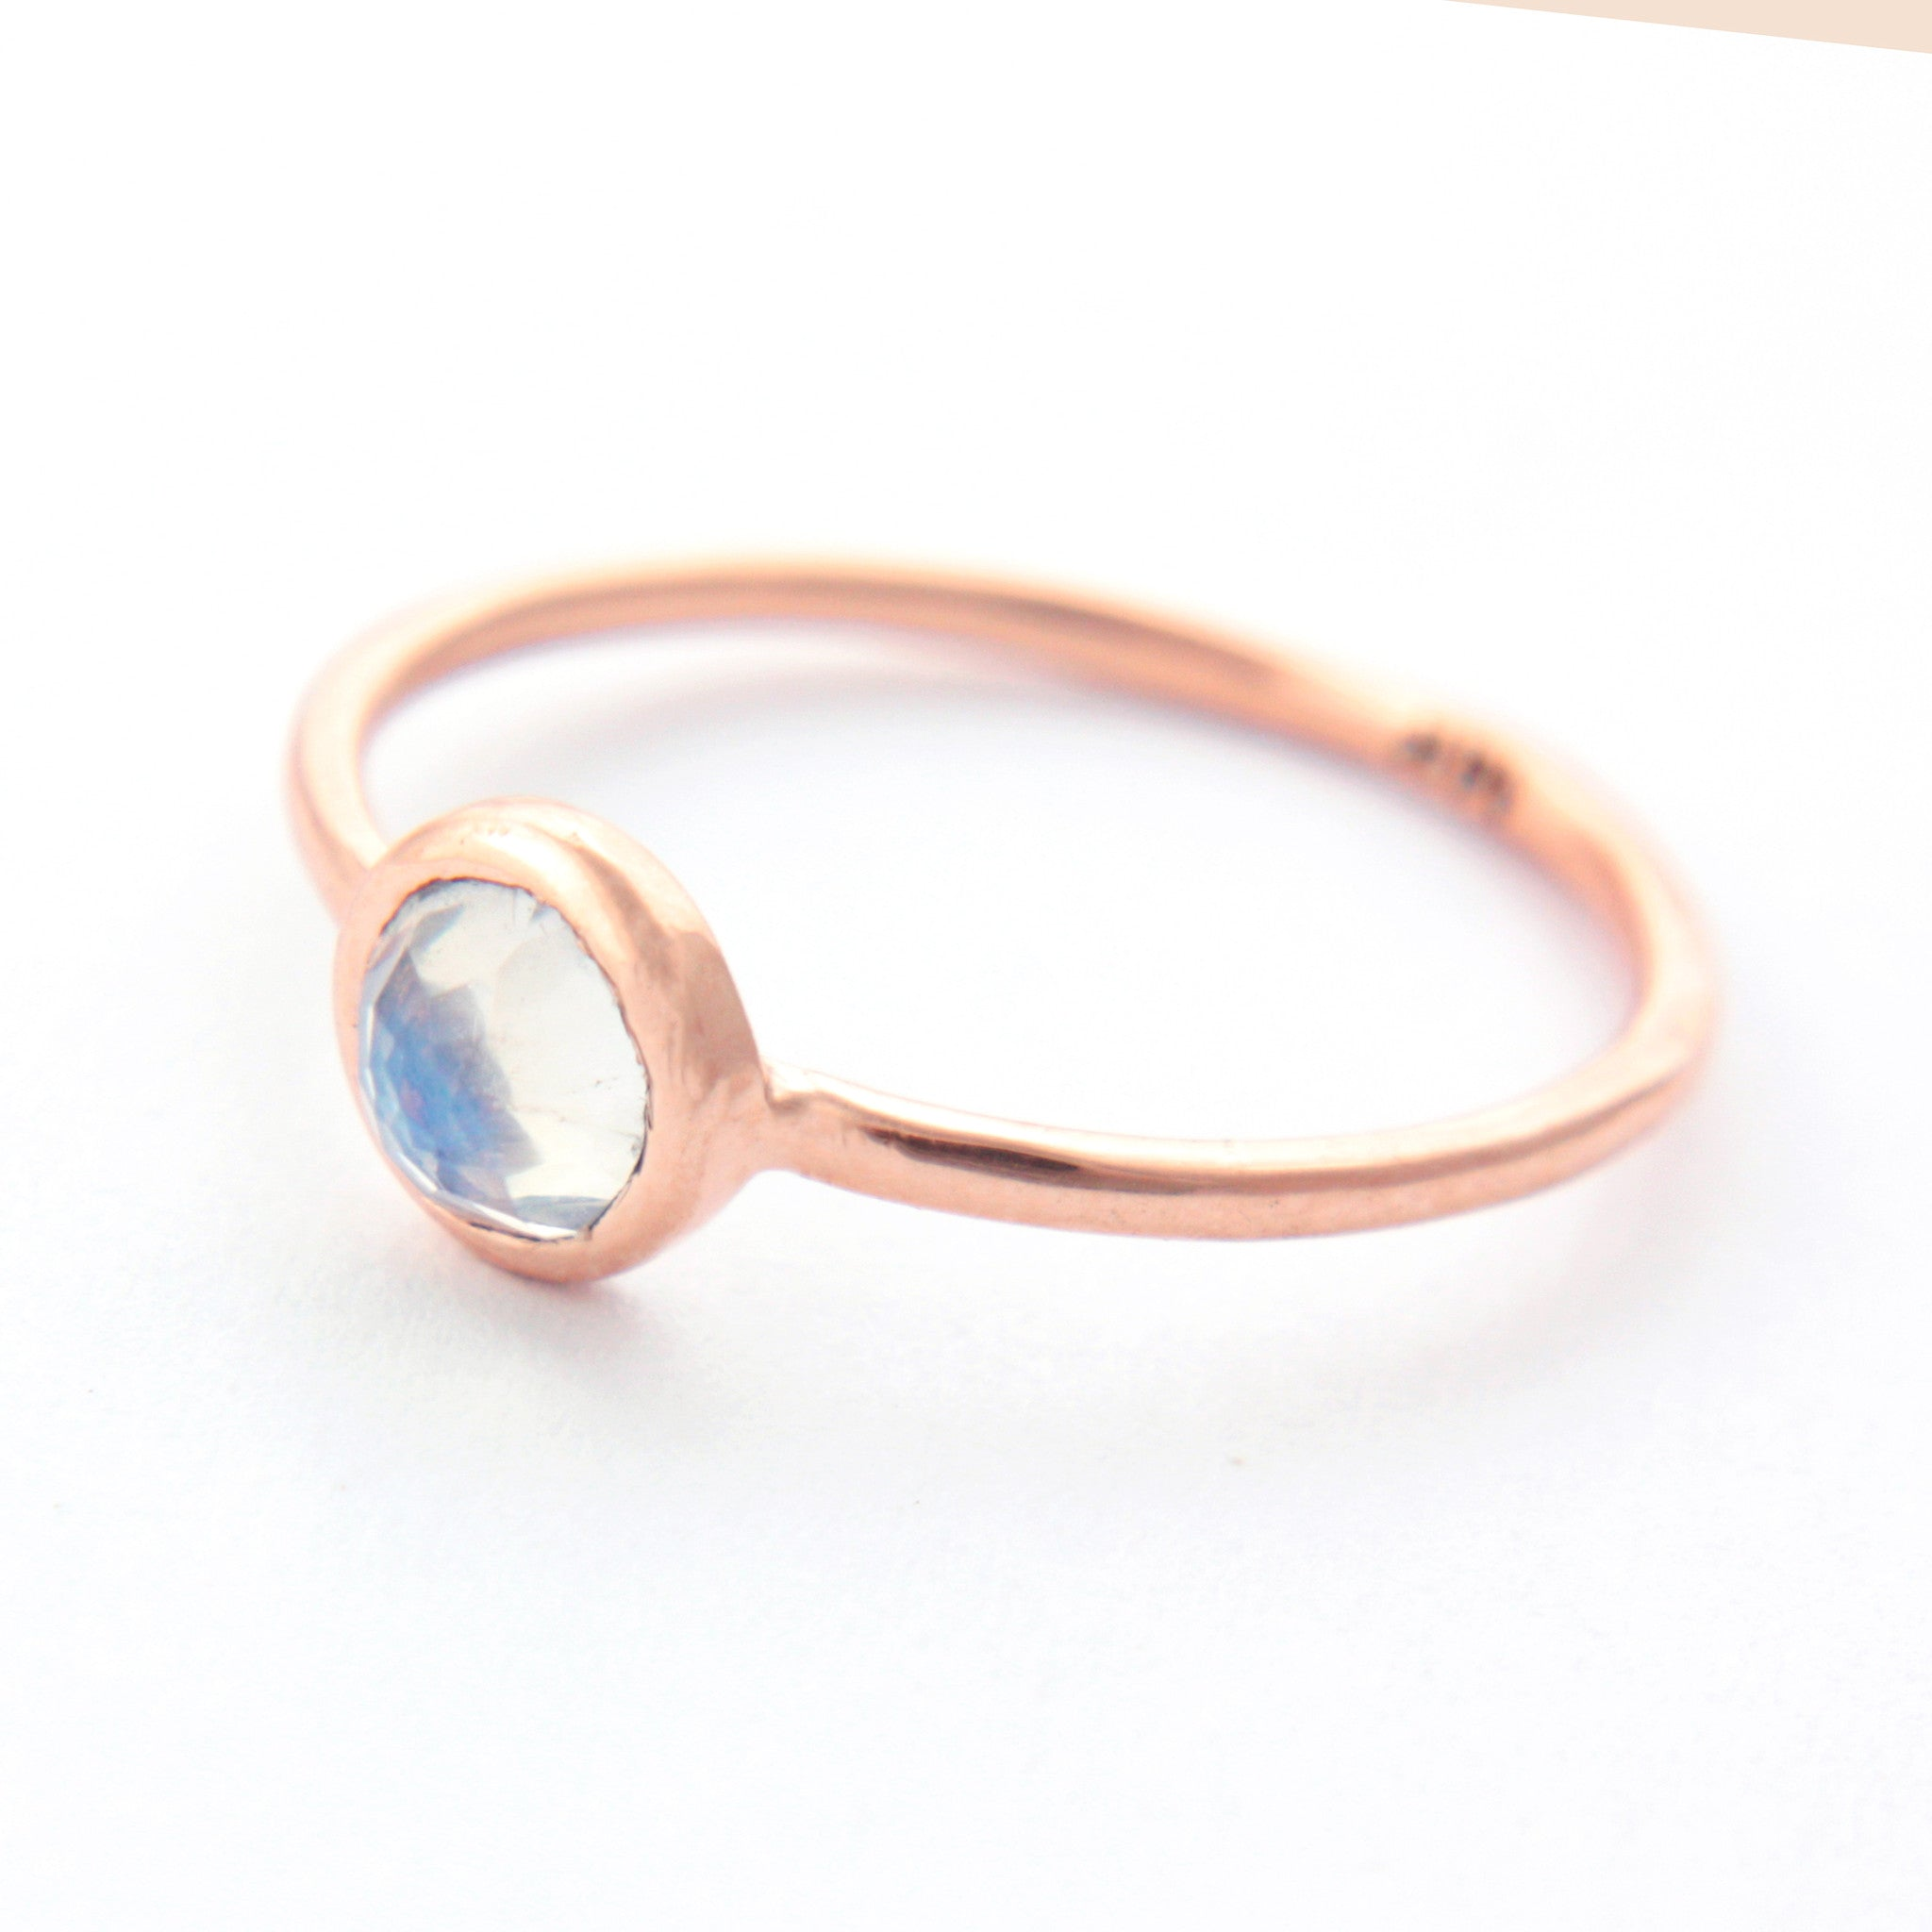 moonstone and ring packaging products rings last mermaid sea one bohemian shells indie harper